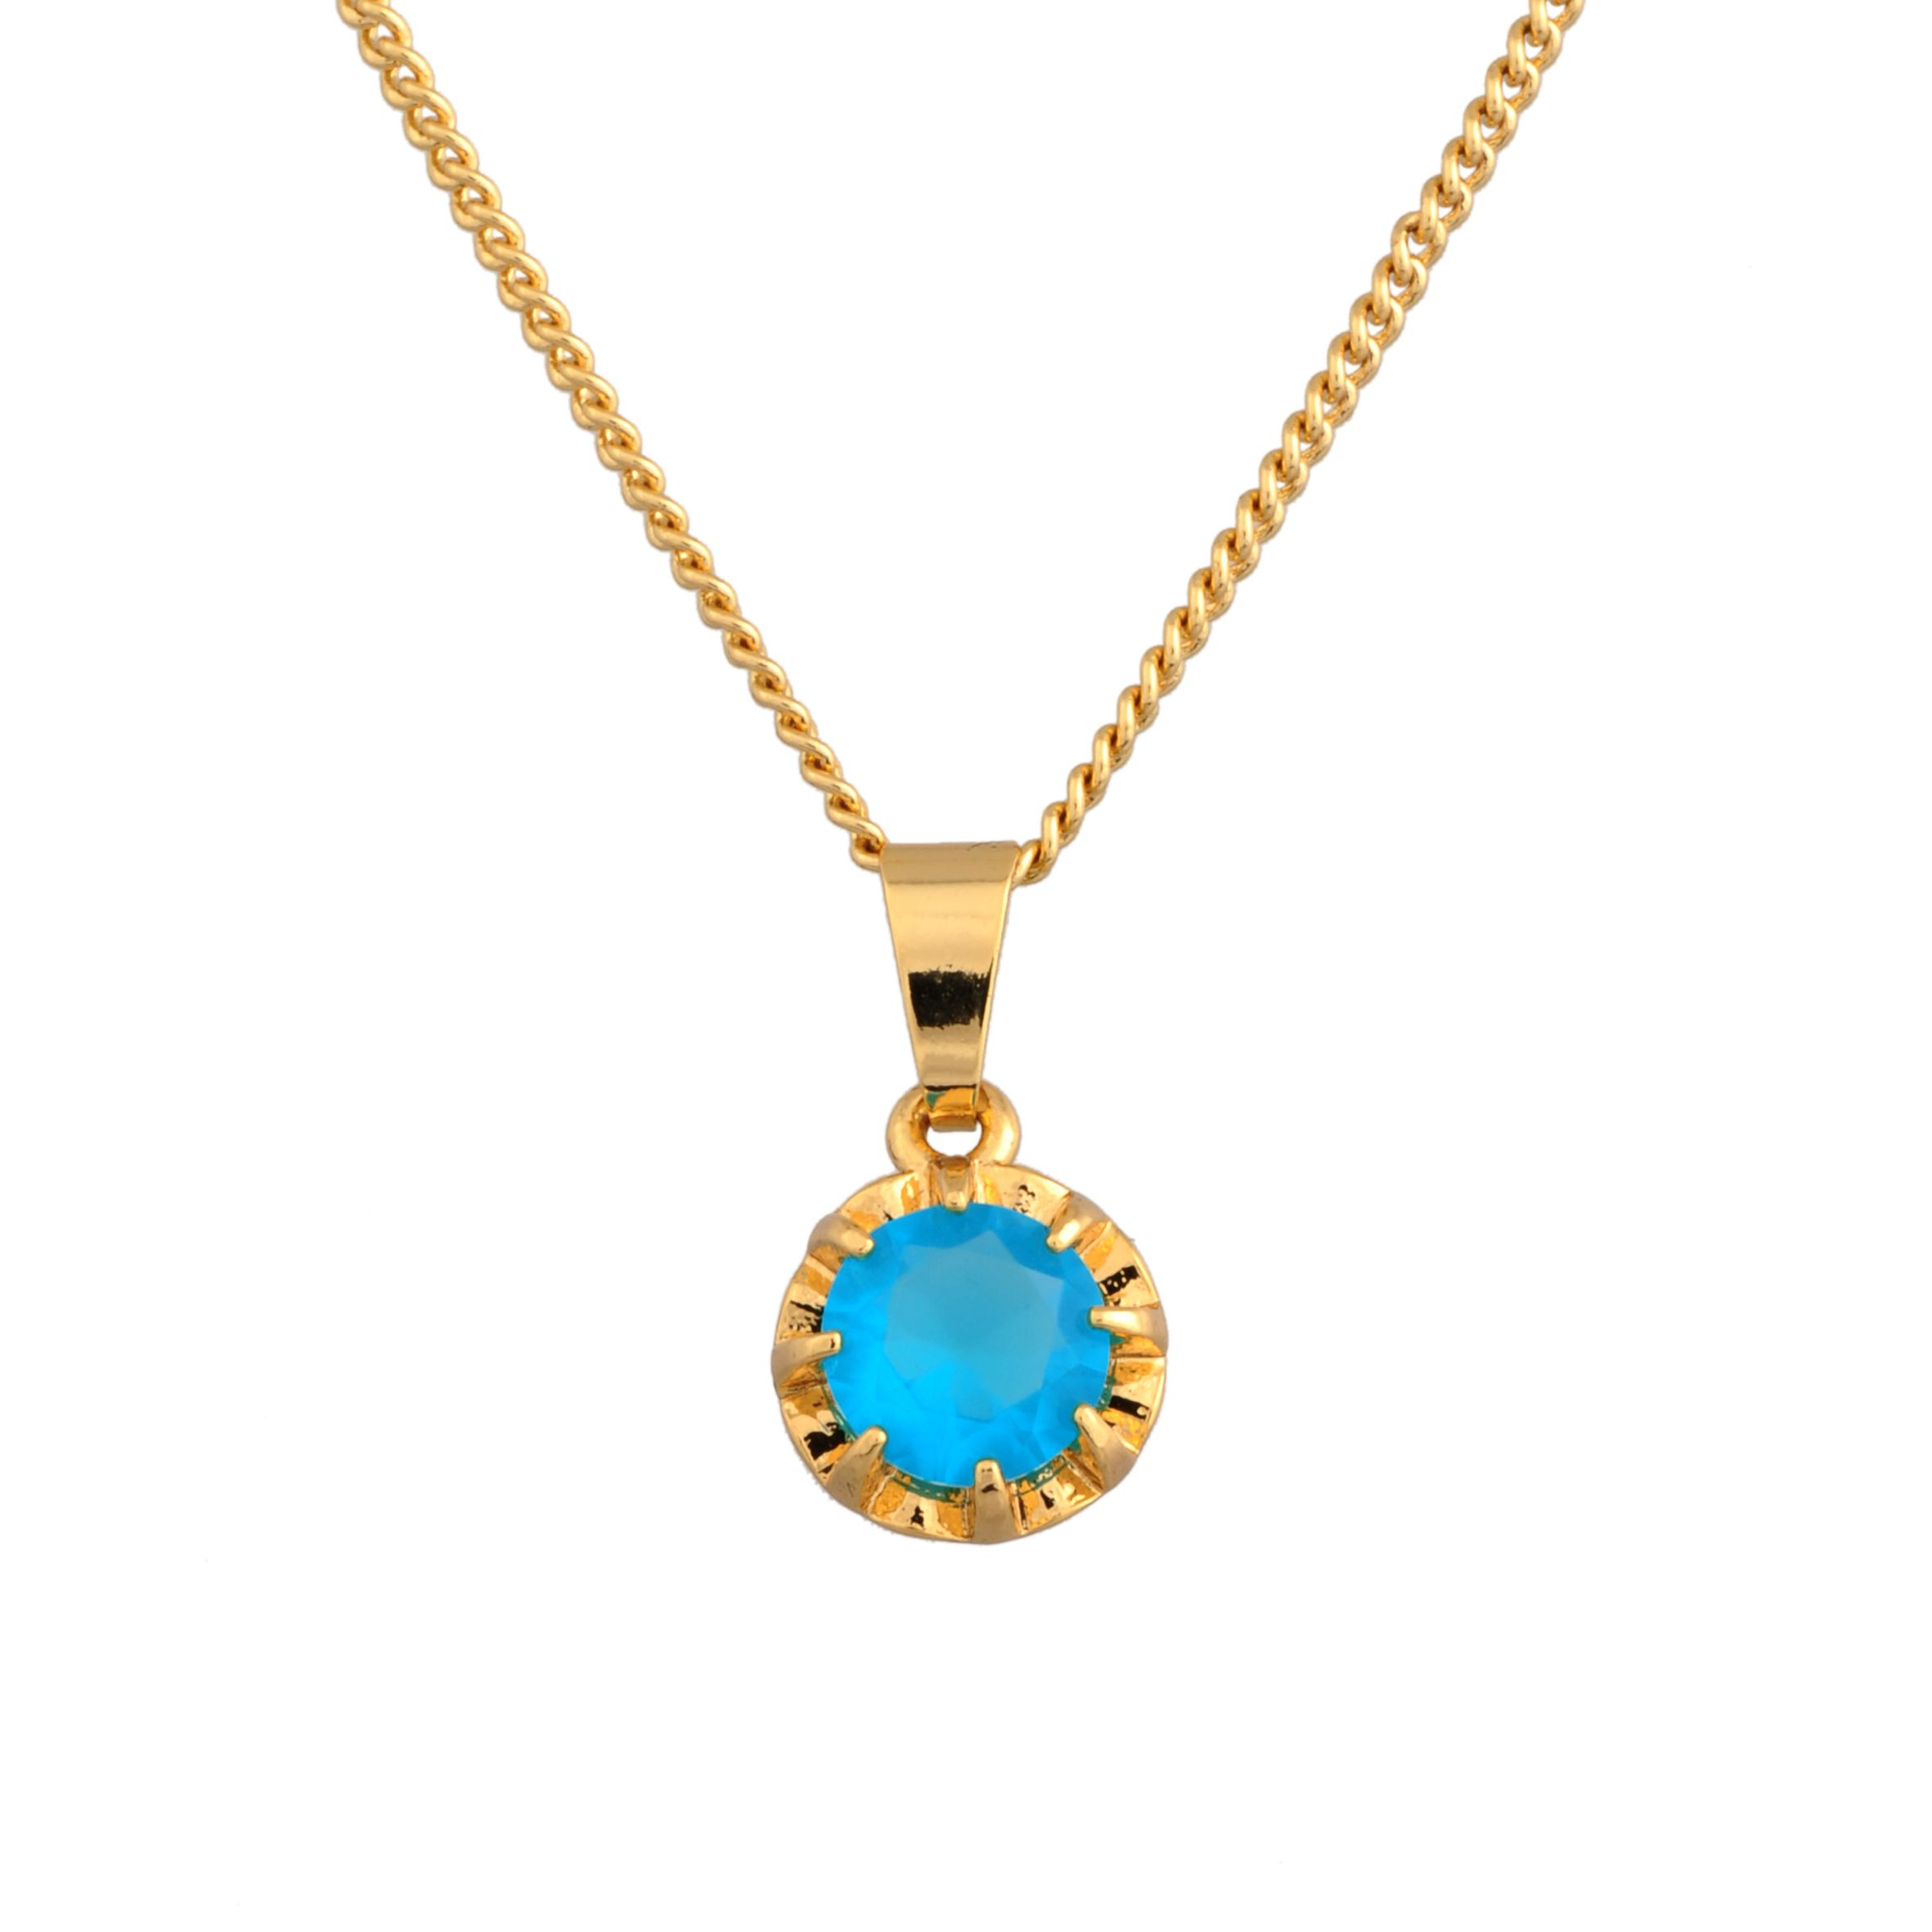 Beau brut et brillant necklace